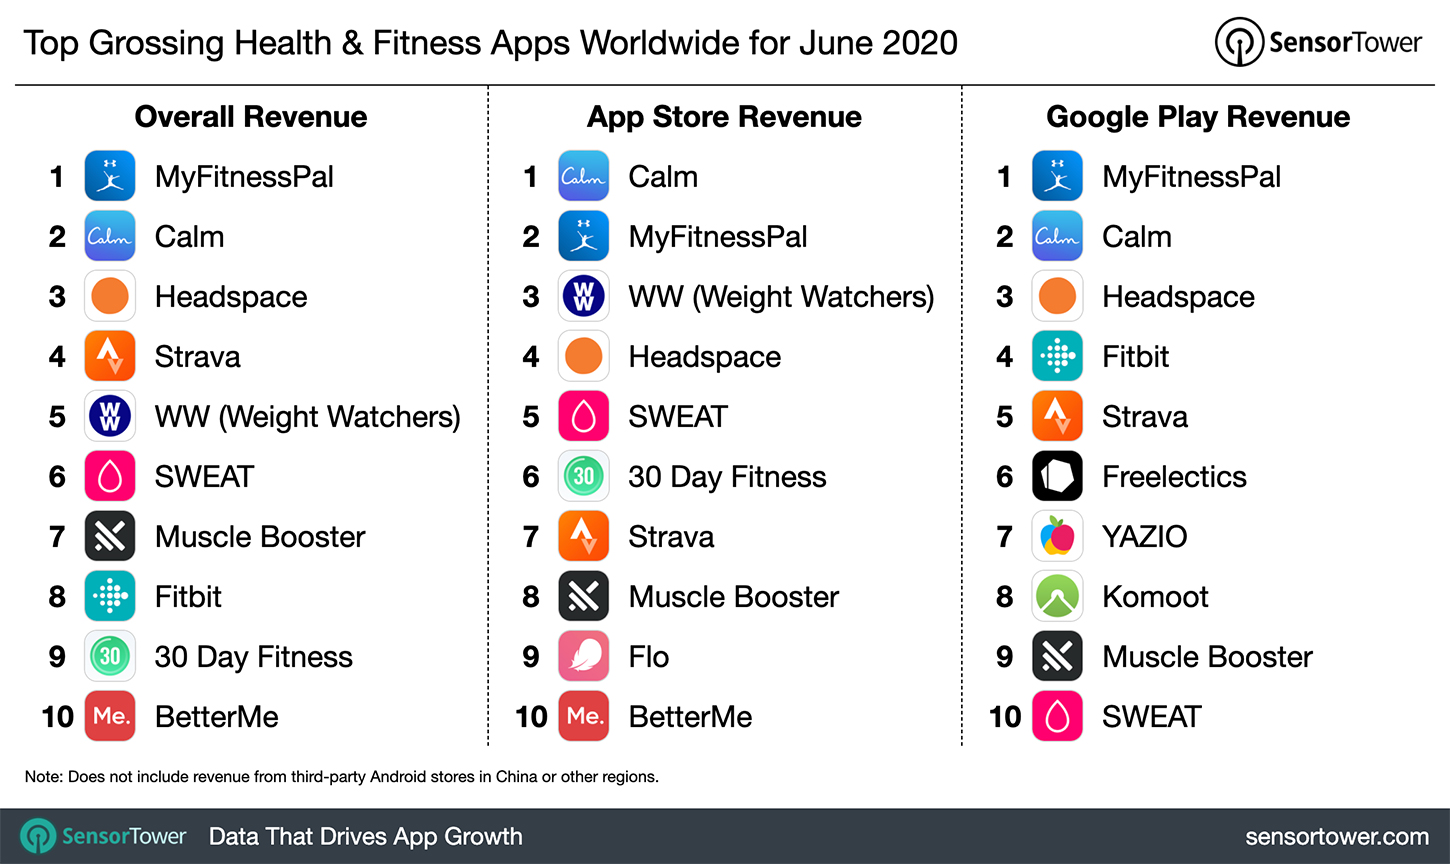 Top Grossing Health & Fitness Apps Worldwide for June 2020